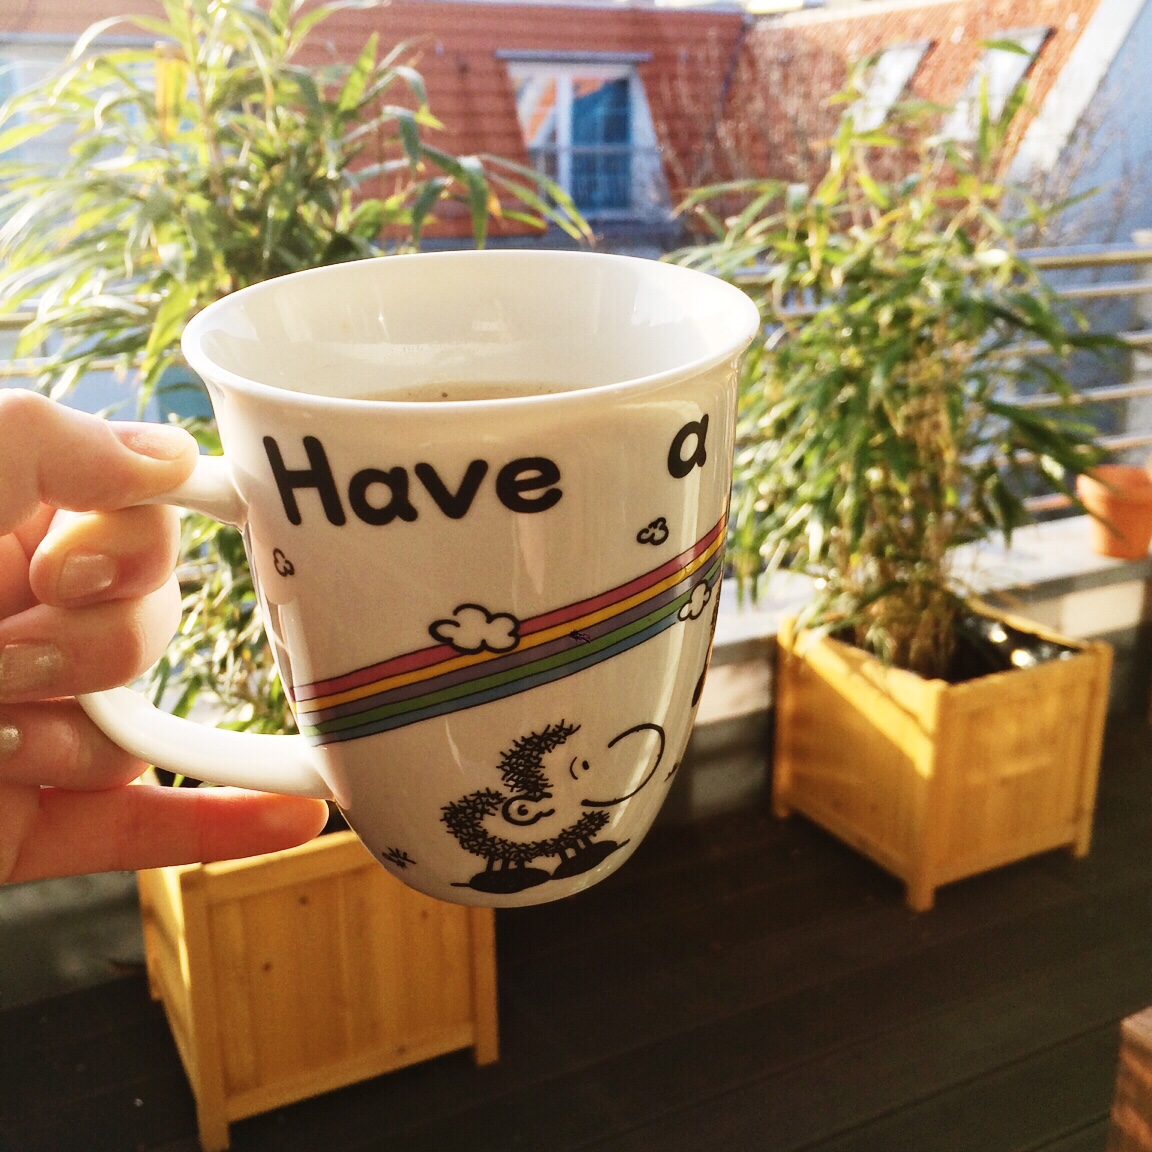 No morning without coffee. (And dreaming of the sun, currently.)